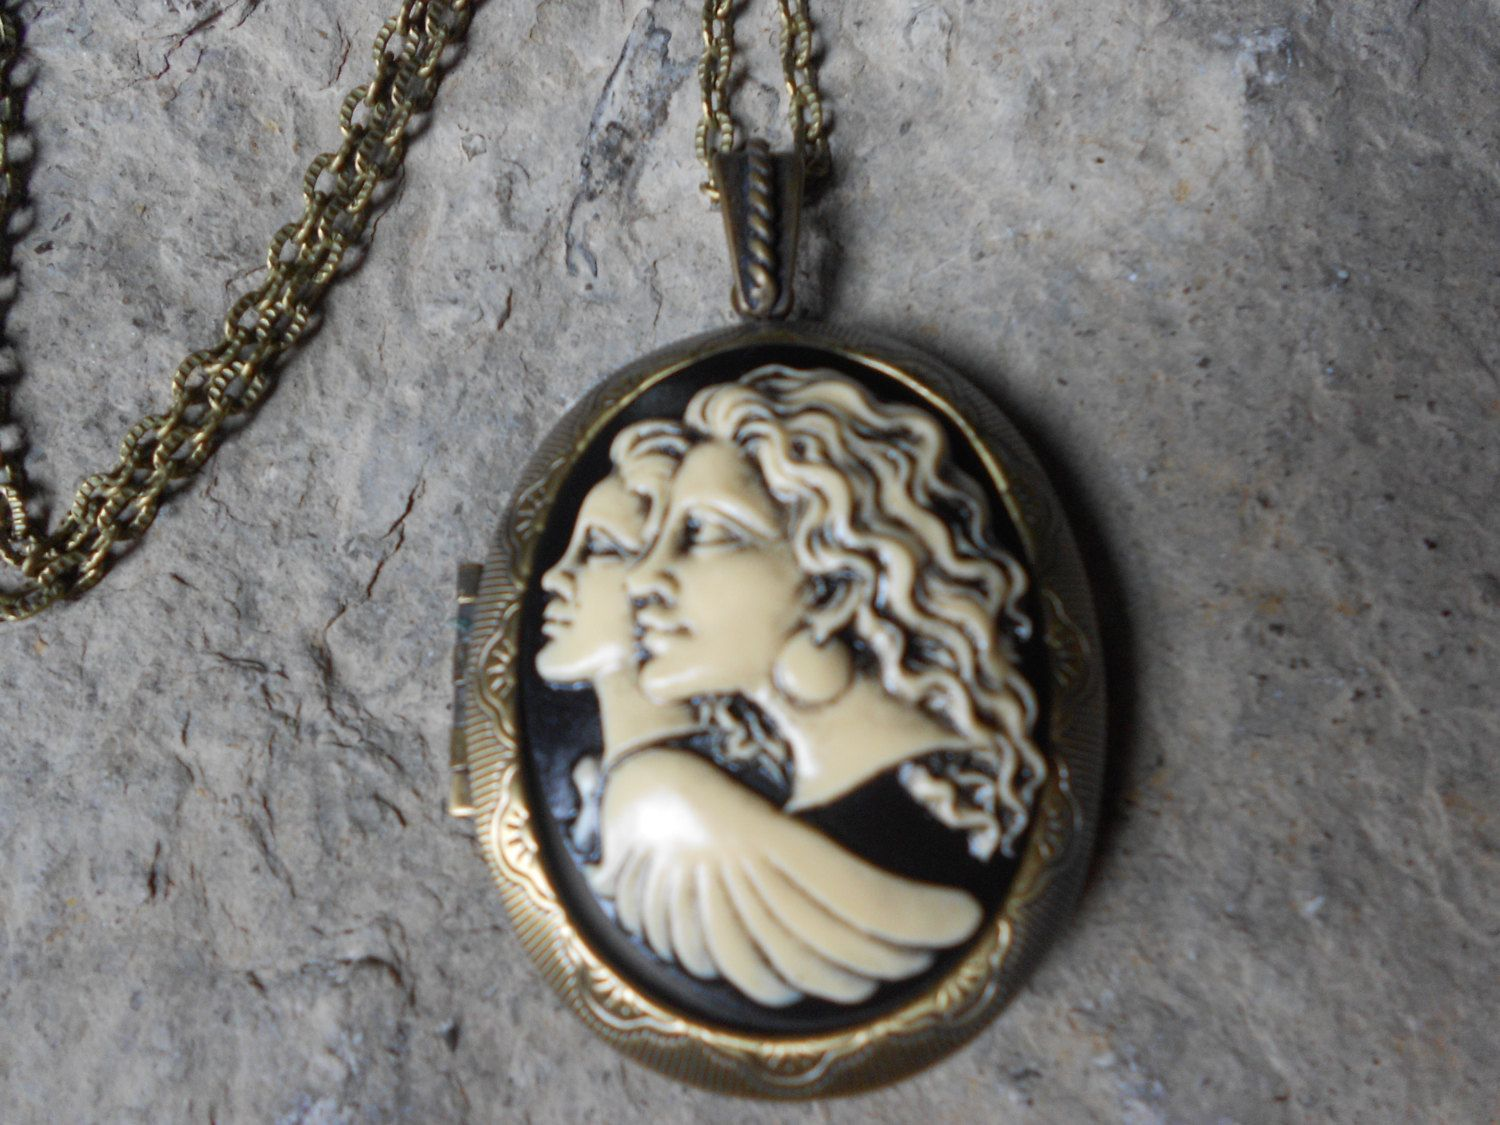 pin pendant bronze cameo look long antiqued angel locket hand stunning painted guardian lockets great quality